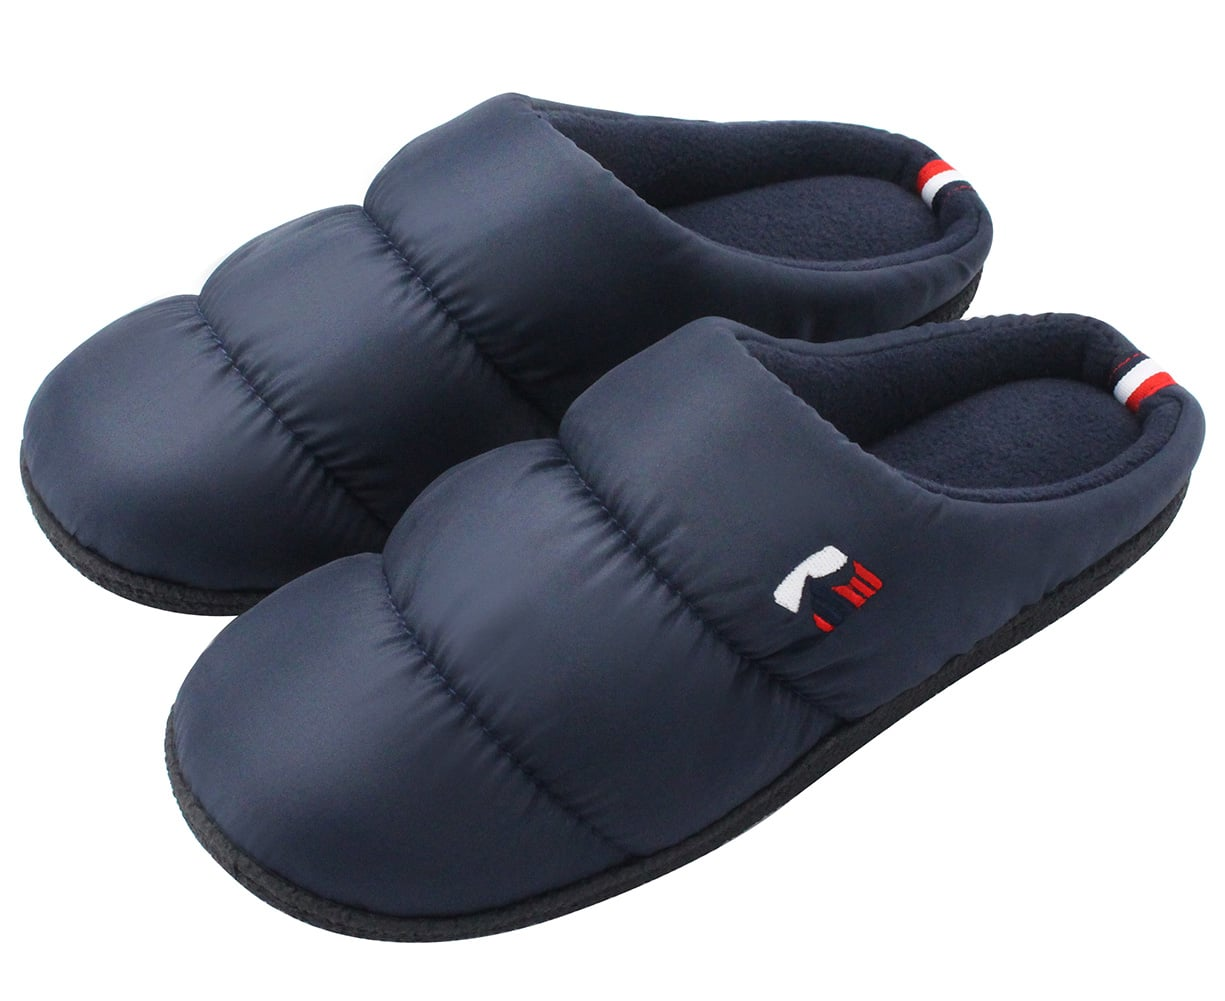 Women's Down Memory Foam Clog Slippers Warm Washable House Shoes 30% OFF @$10.9+FS